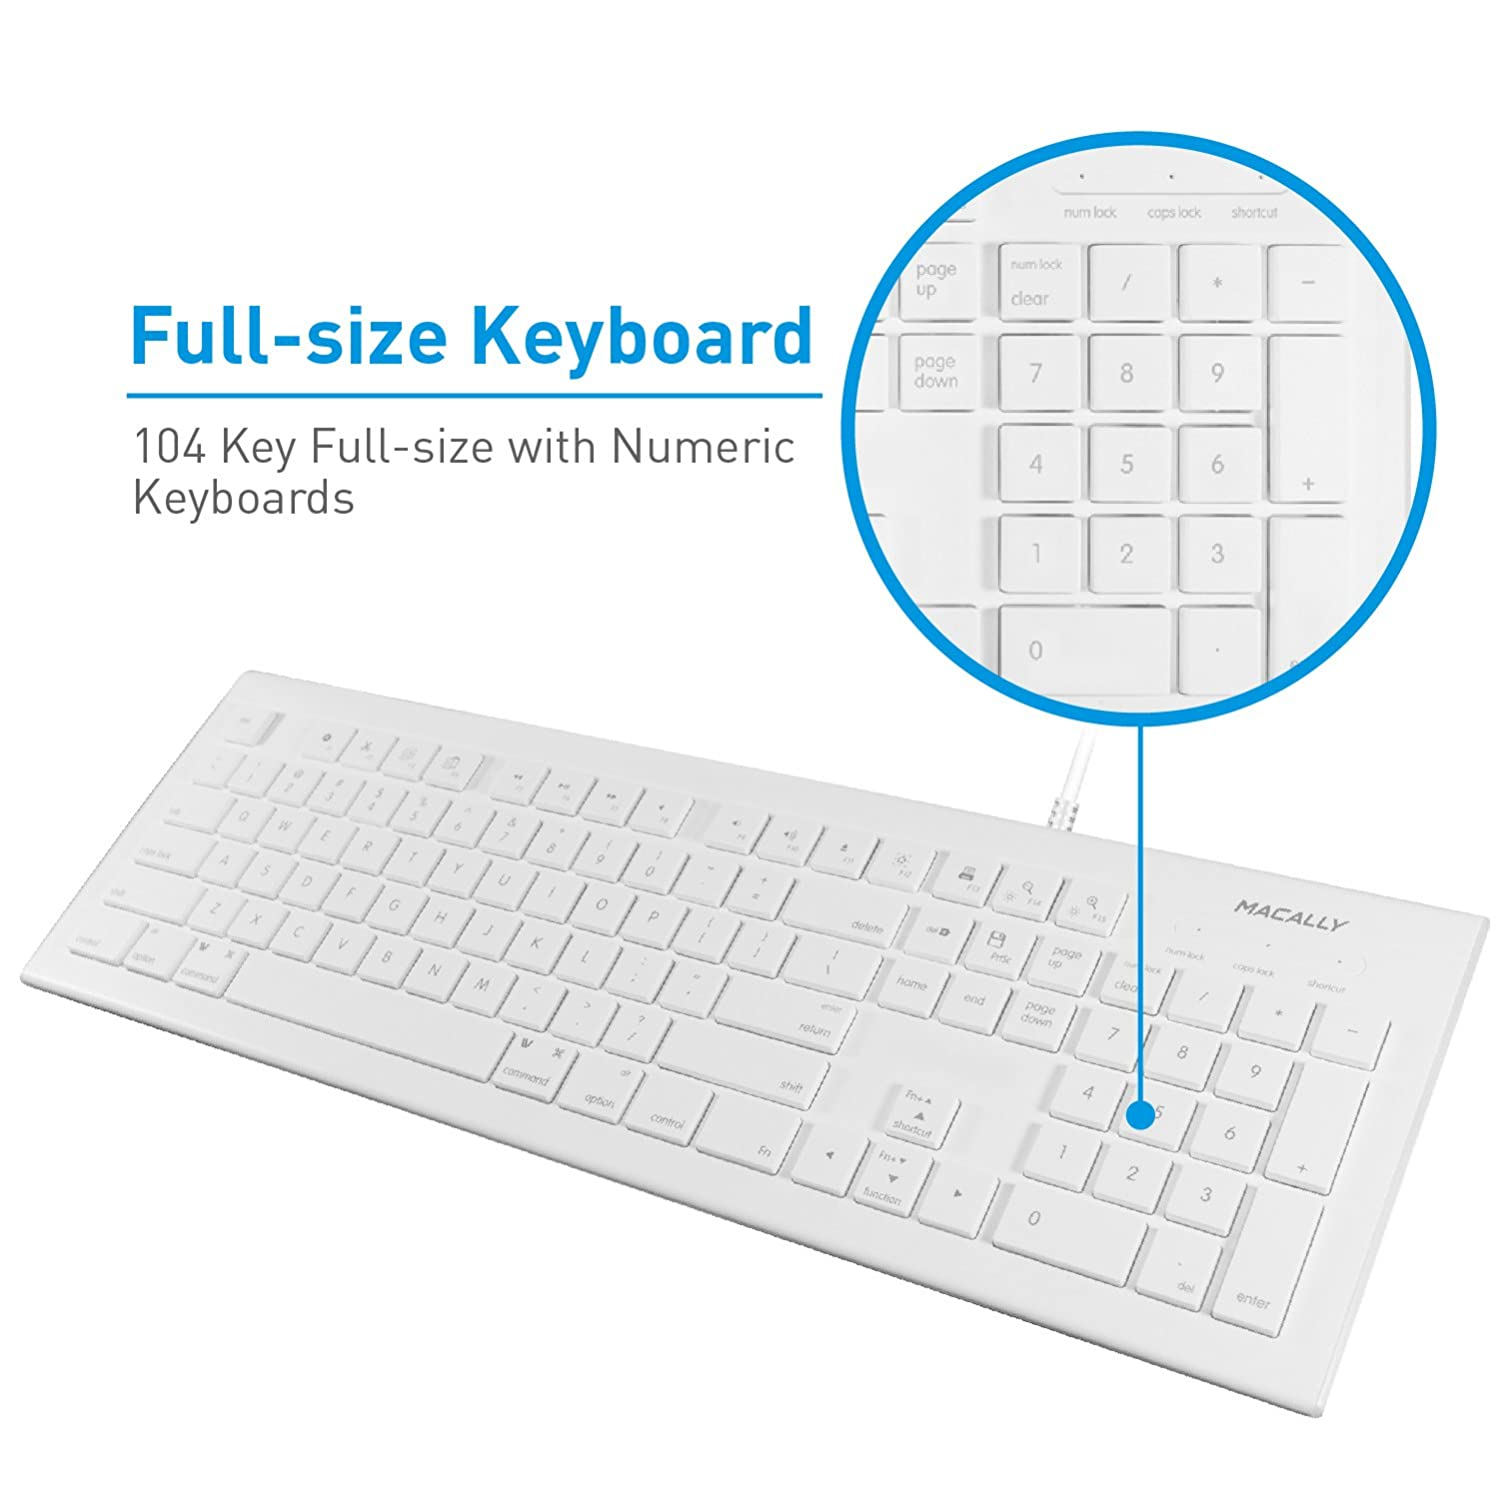 Macally Full Size Usb Wired Keyboard Mkeye For Mac And Remove The Casing Of Hub Keypad Circuit Boards Pc White W Shortcut Hot Keys Computers Accessories